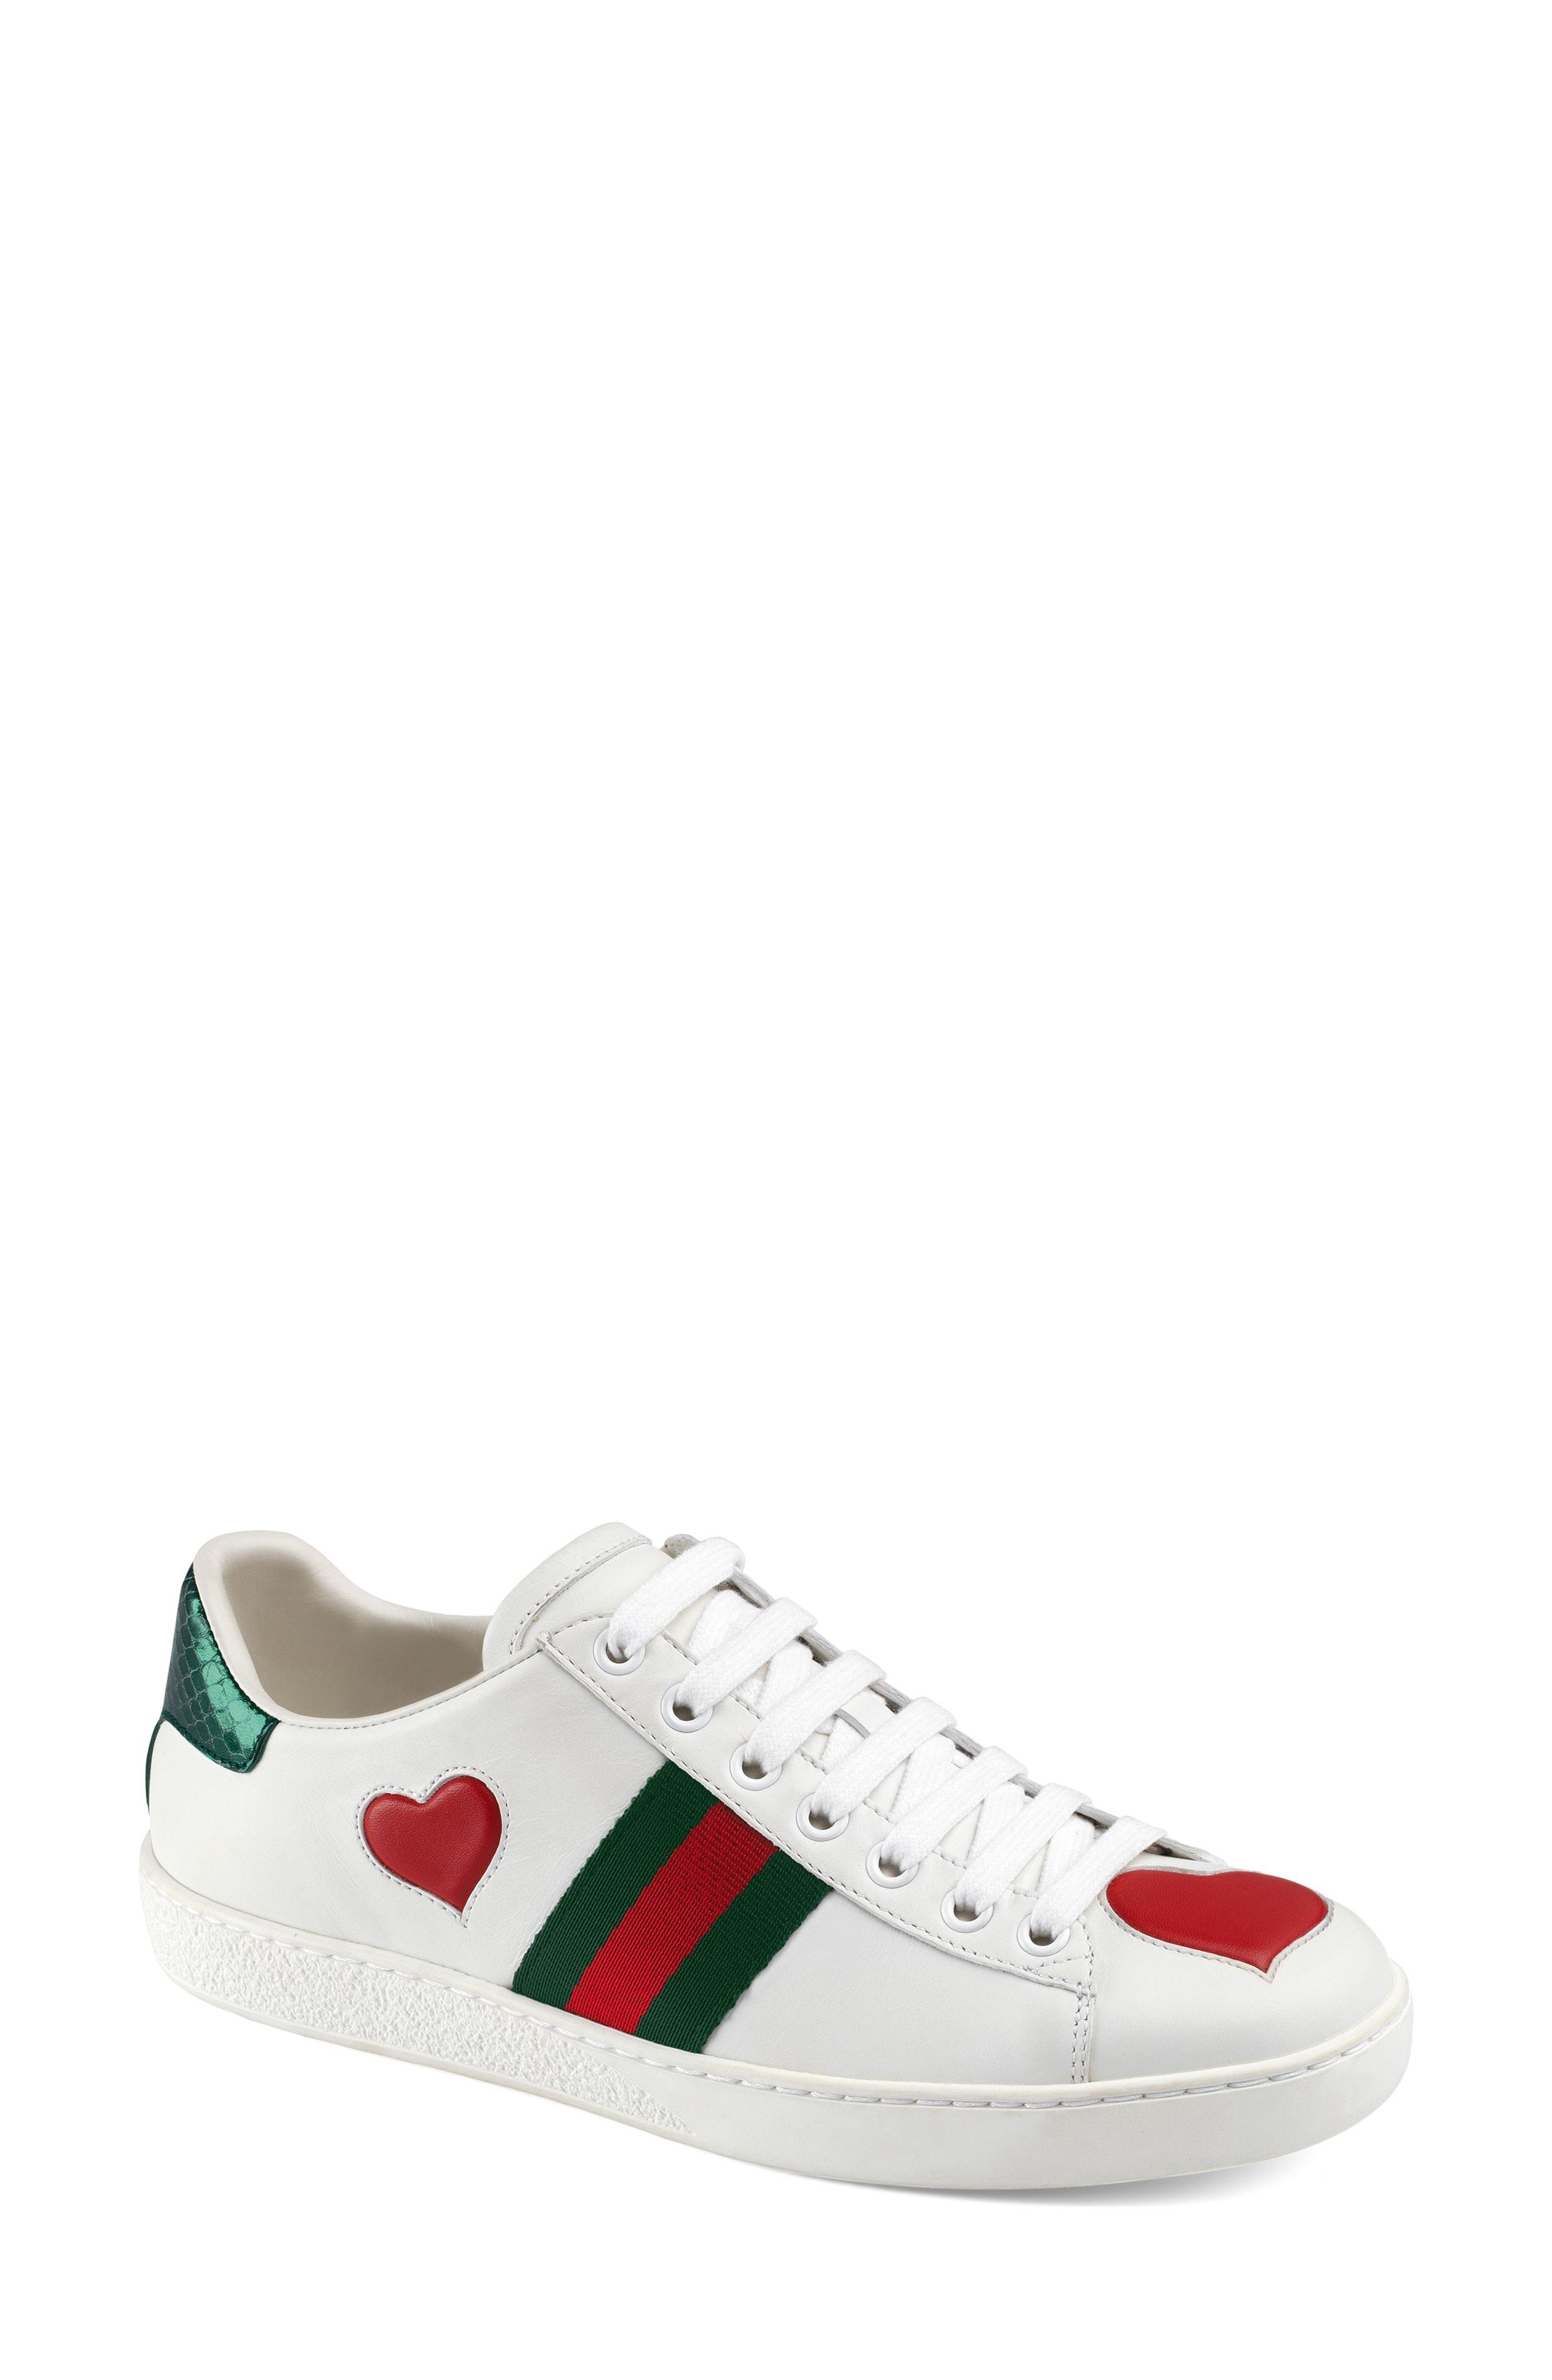 b34706e7ae0 ... Leather Low Top Sneakers Gucci New Ace Heart Sneaker